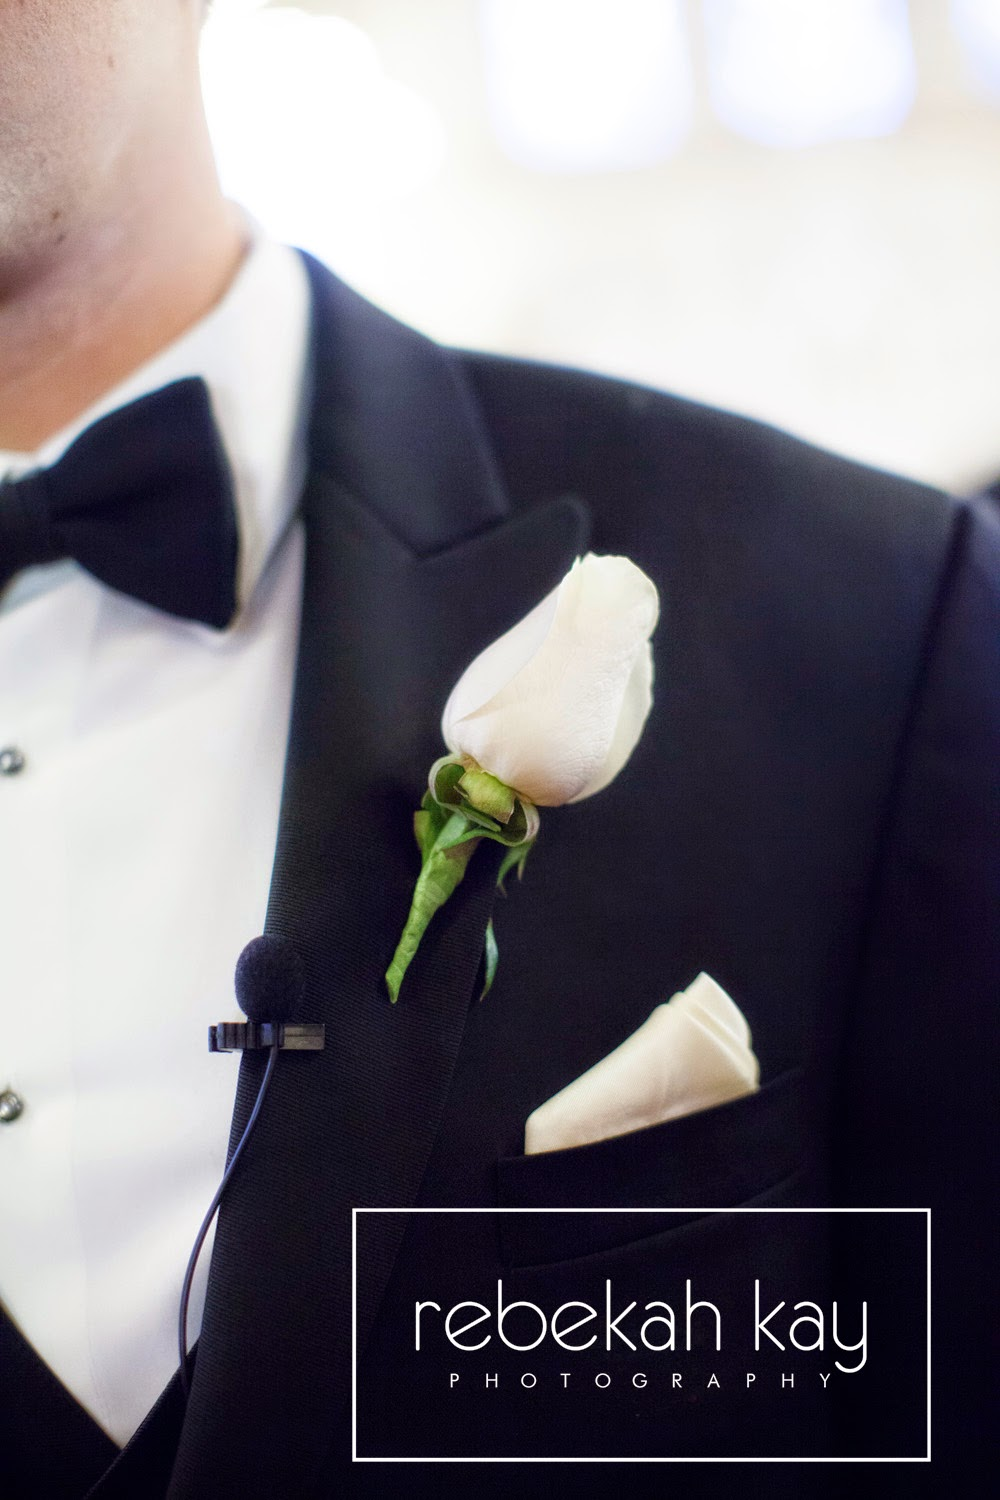 rebekah kay photography : les fleurs : fall wedding : white rose boutonniere